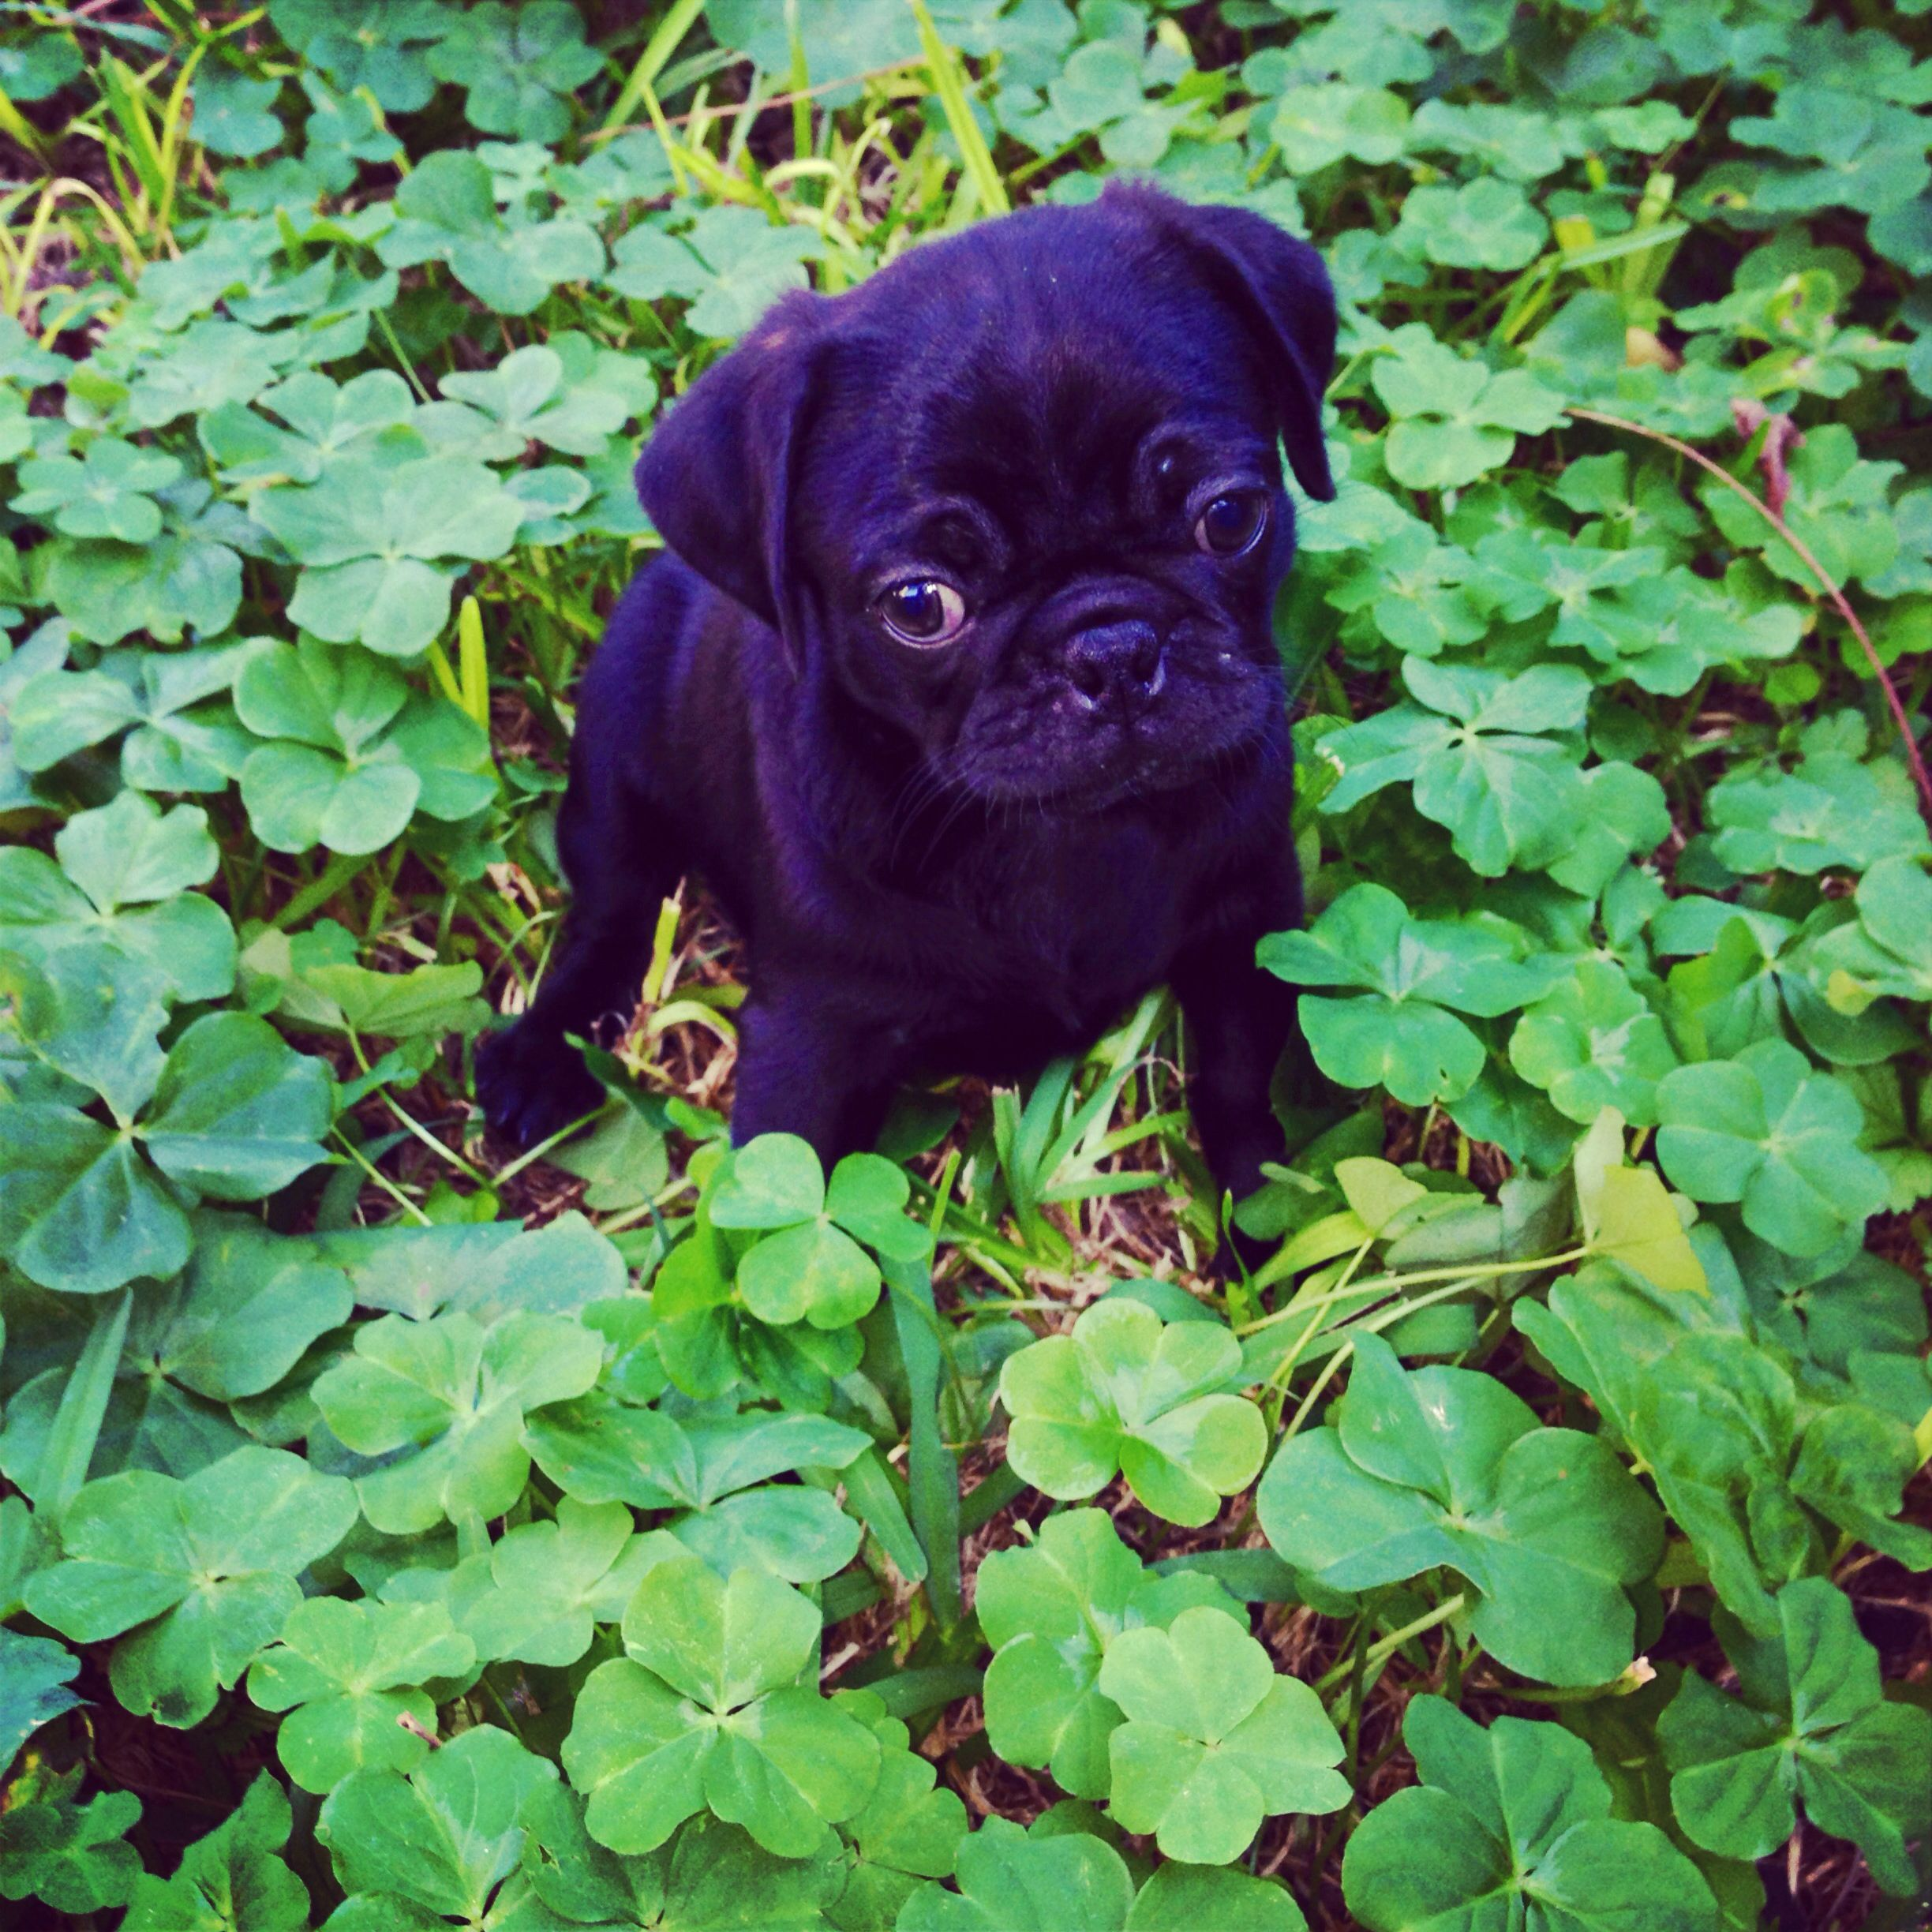 Cute Black Pug Puppy In A Bed Of Clovers Black Pug Puppies